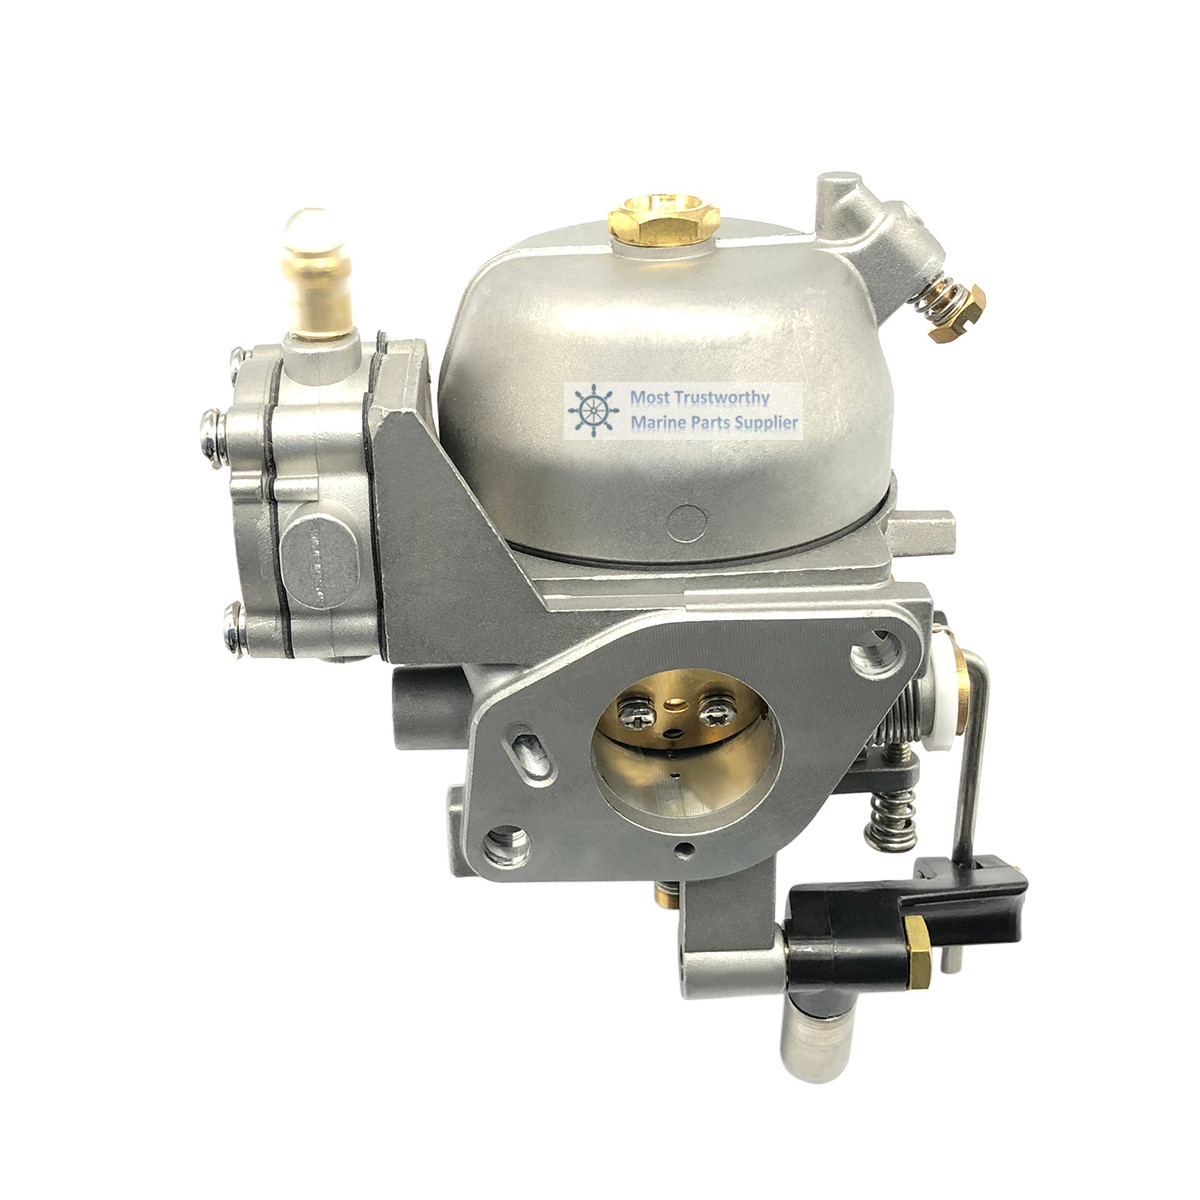 New Carburetor For Replacement  Suzuki  15HP DT15 DT9.9   Outboard Engine Motor 13200-91D21   13200-939D1